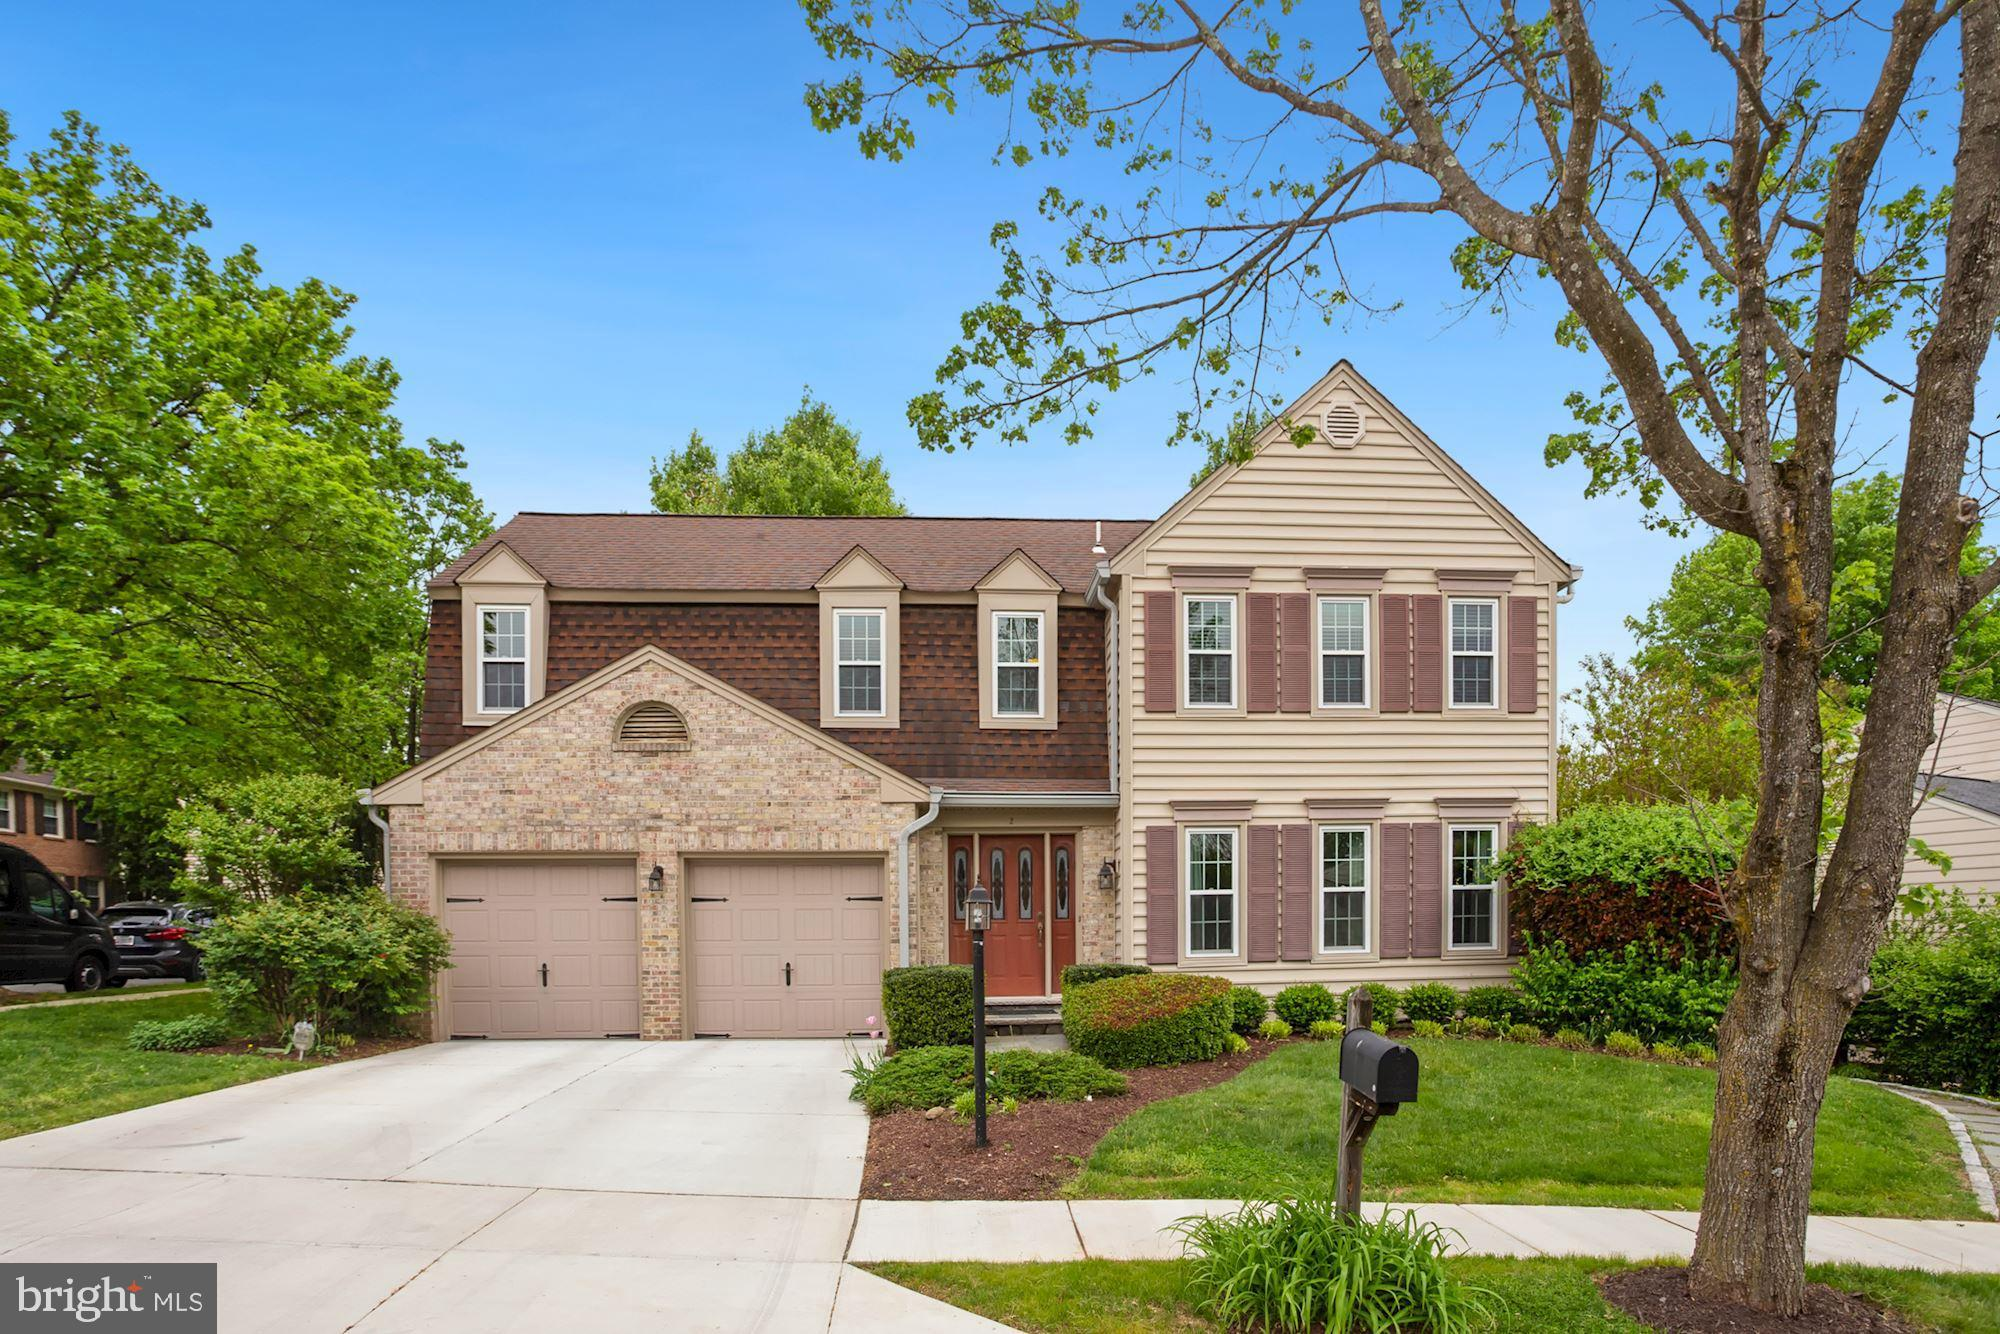 Gorgeous Colonial house located in rarely available Flint Ledge Estates! Great curb appeal with invi